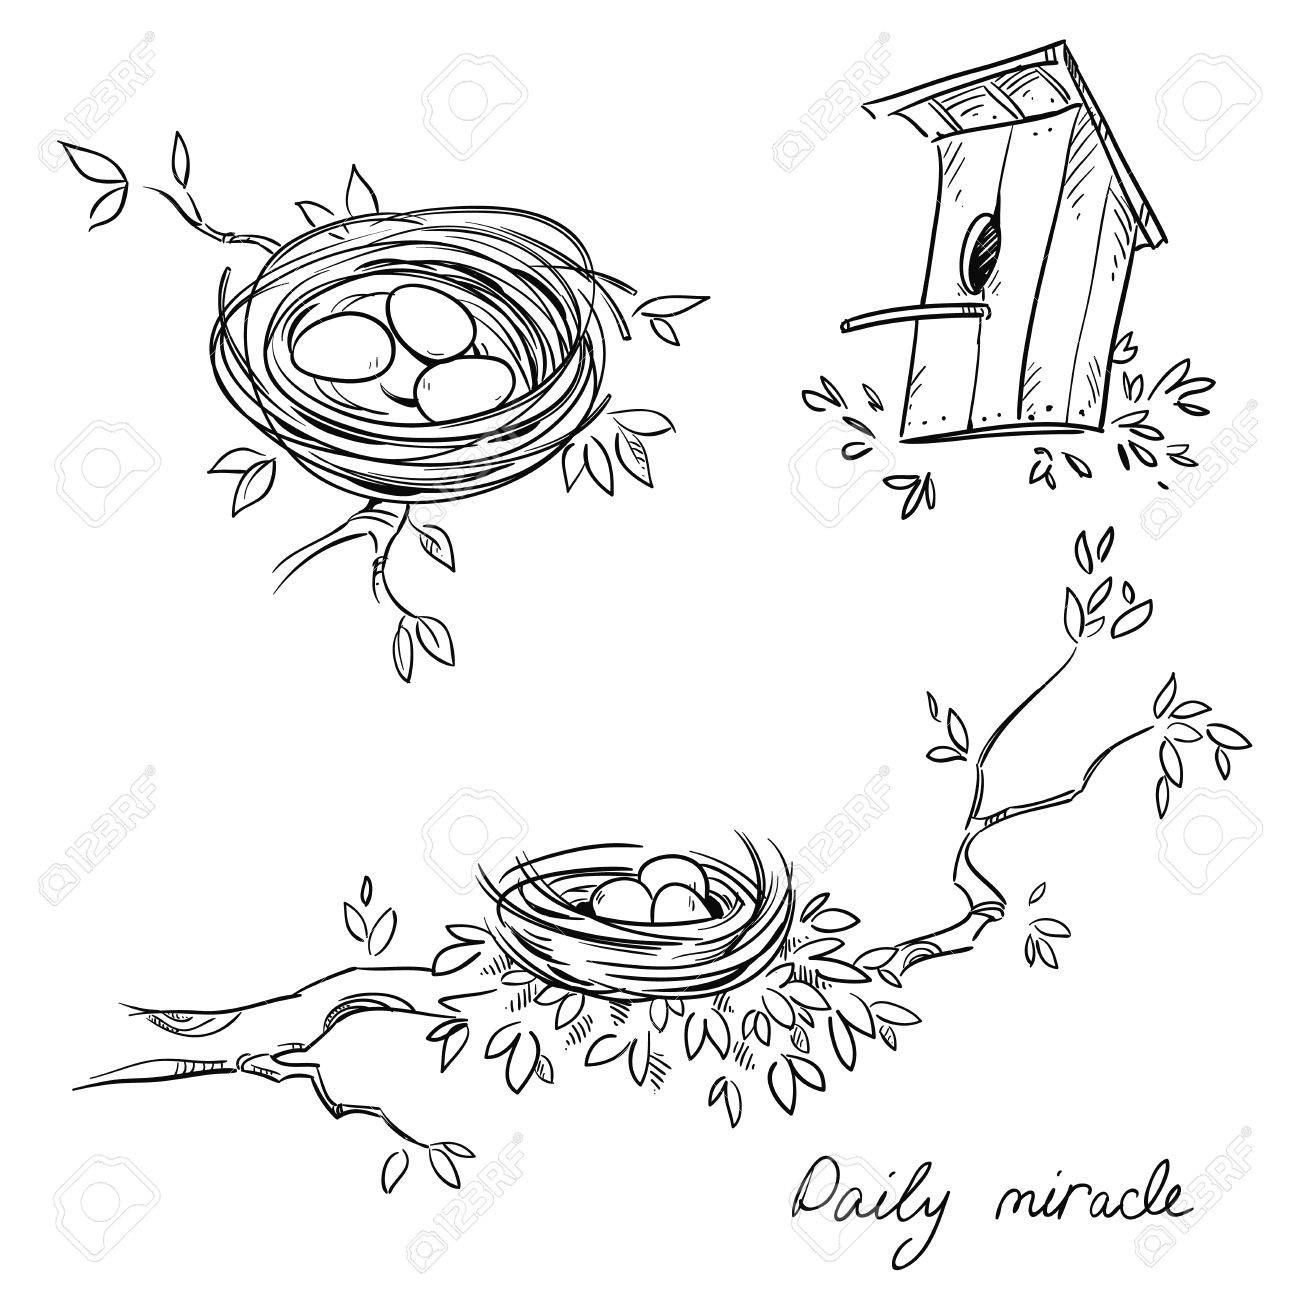 Hand drawn nests and a birdhouse, line drawing - 57880418